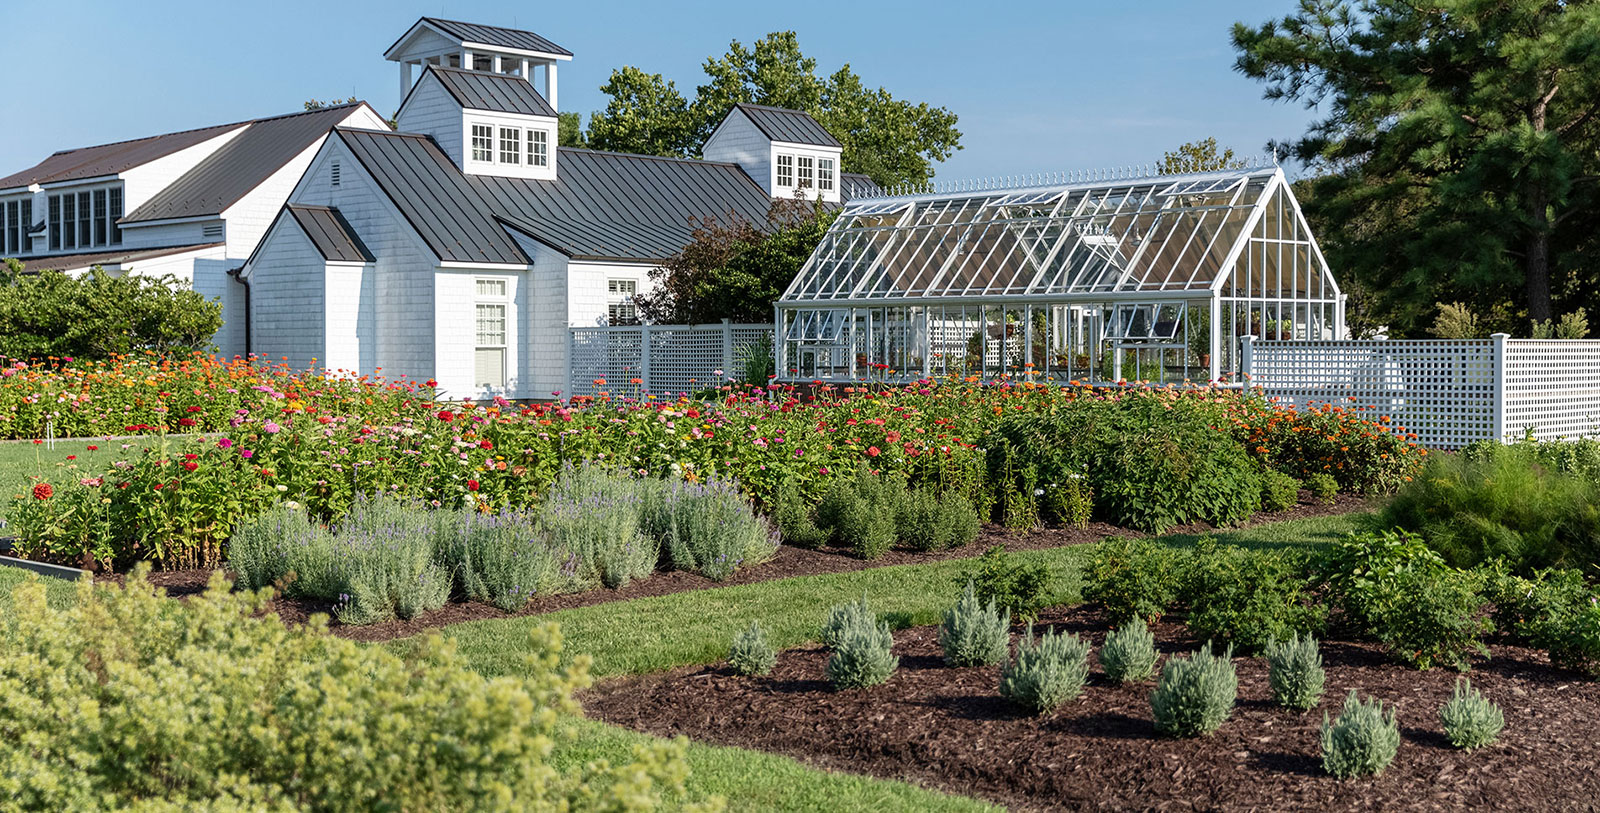 Image of Greenhouse, Inn at Perry Cabin in St. Michaels, Maryland, 1816, Member of Historic Hotels of America, Explore